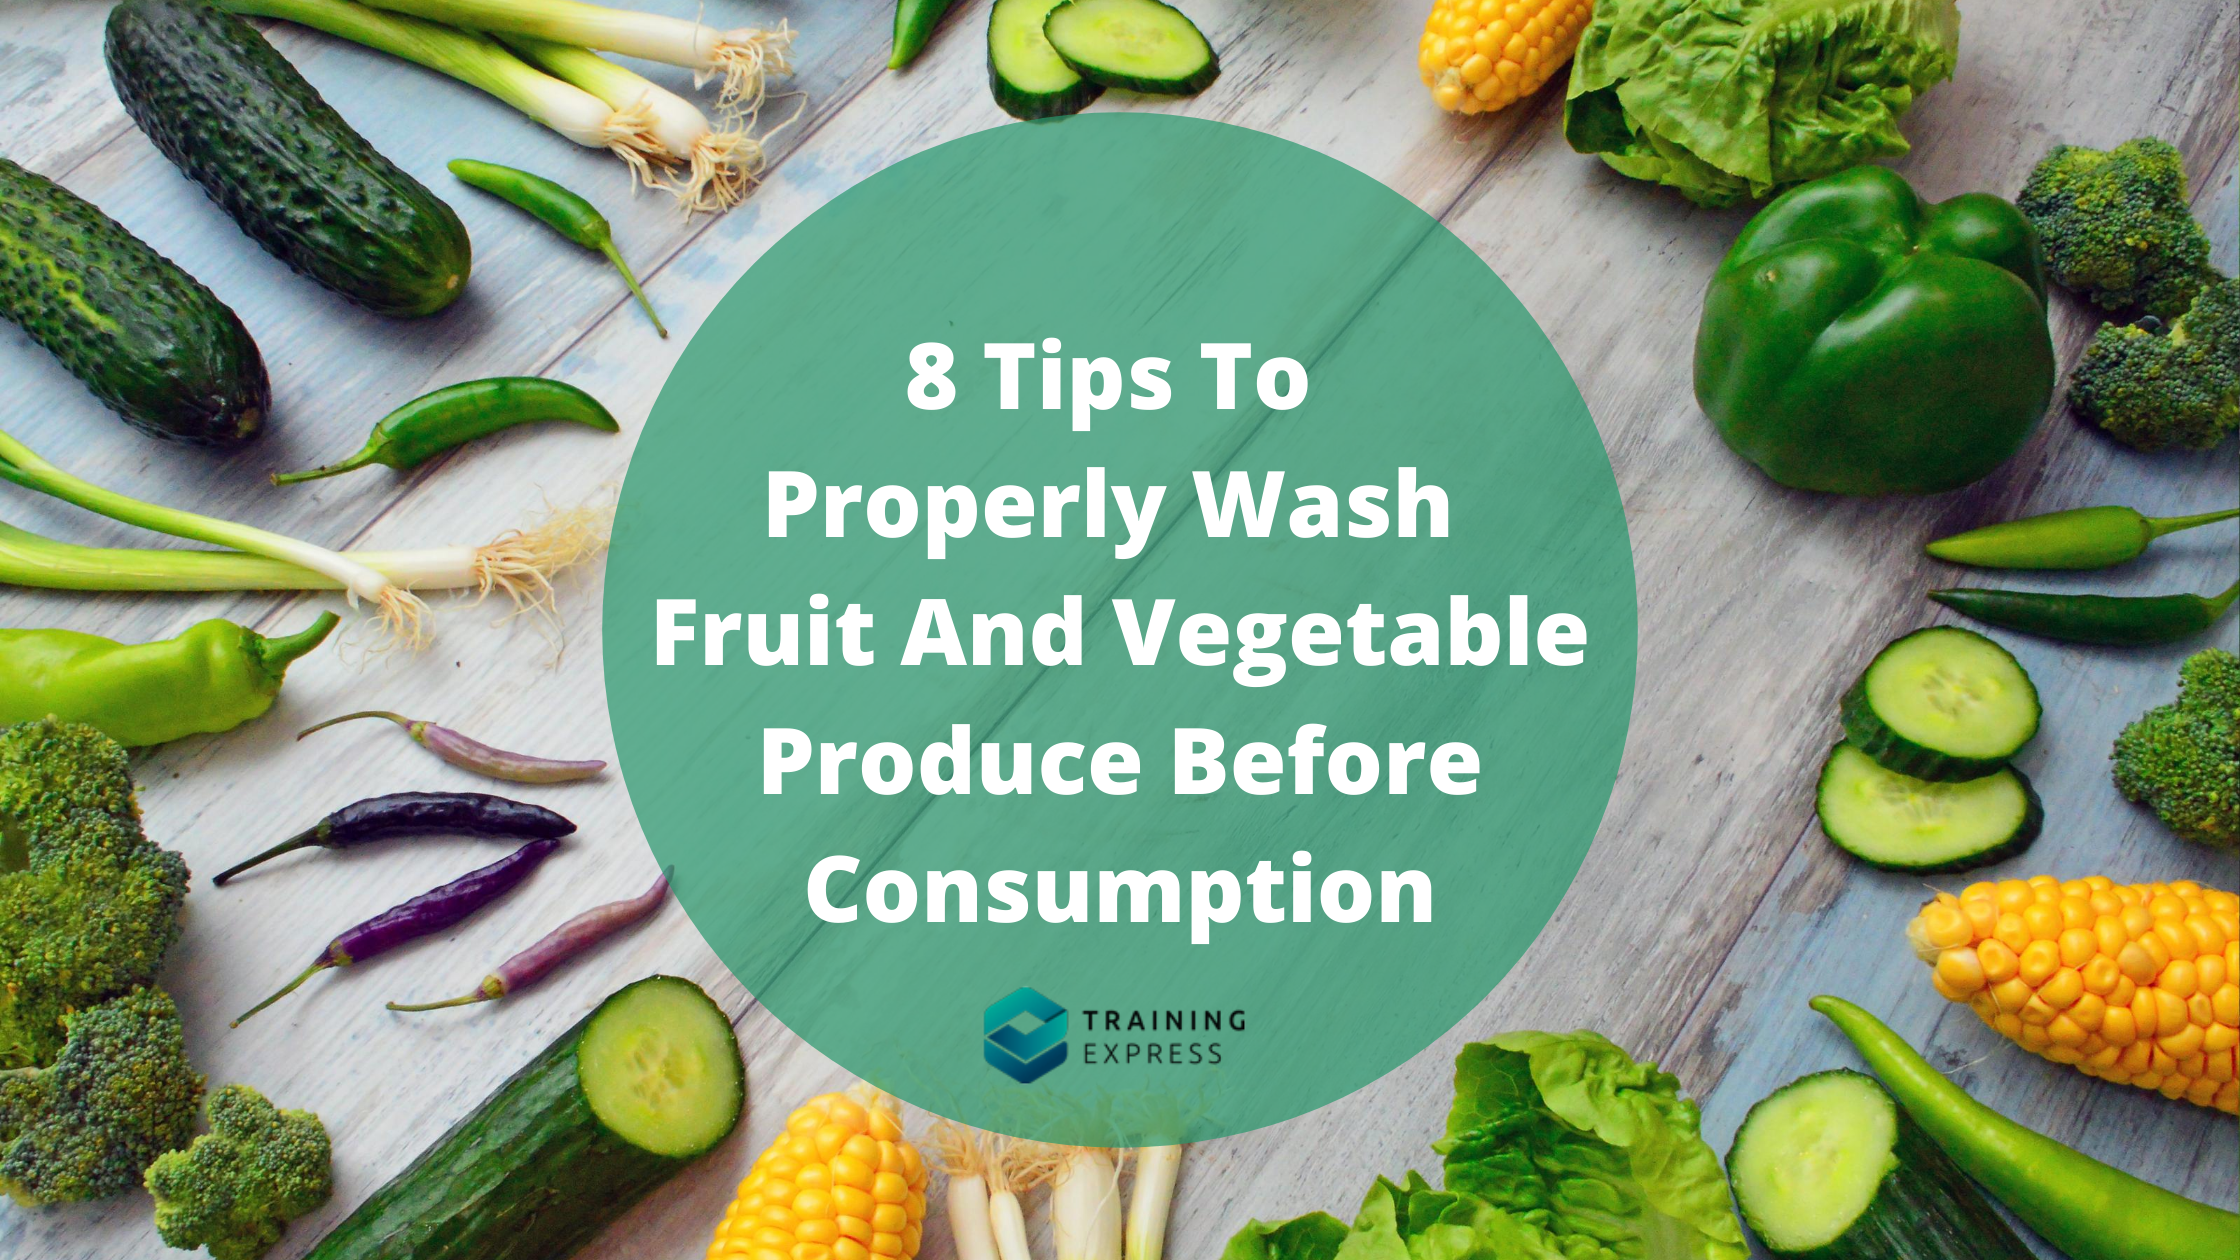 Tips To Properly Wash Fruit And Vegetable